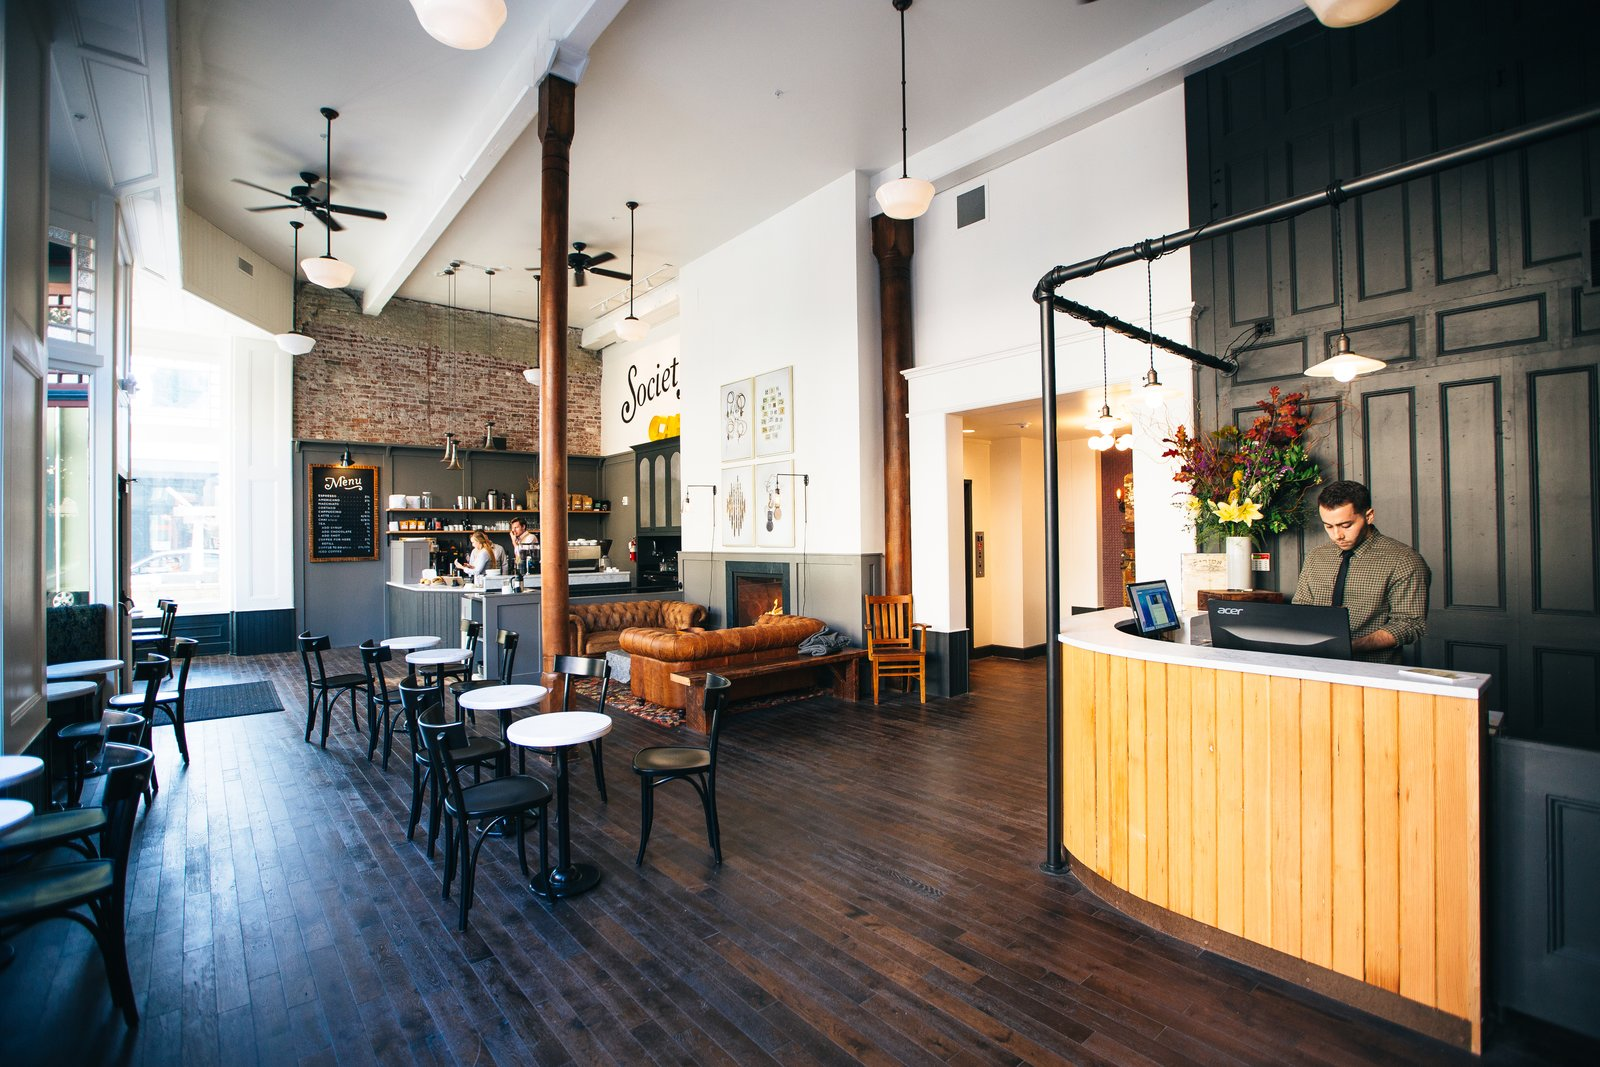 Table, Pendant Lighting, Chair, Dark Hardwood Floor, Living Room, Sofa, Wall Lighting, and Gas Burning Fireplace The lobby of the hotel contains a cafe and lounge space complete with a fireplace.  Photo 4 of 11 in A Chic Portland Hotel Offers Lodging As Affordable as $35 a Night